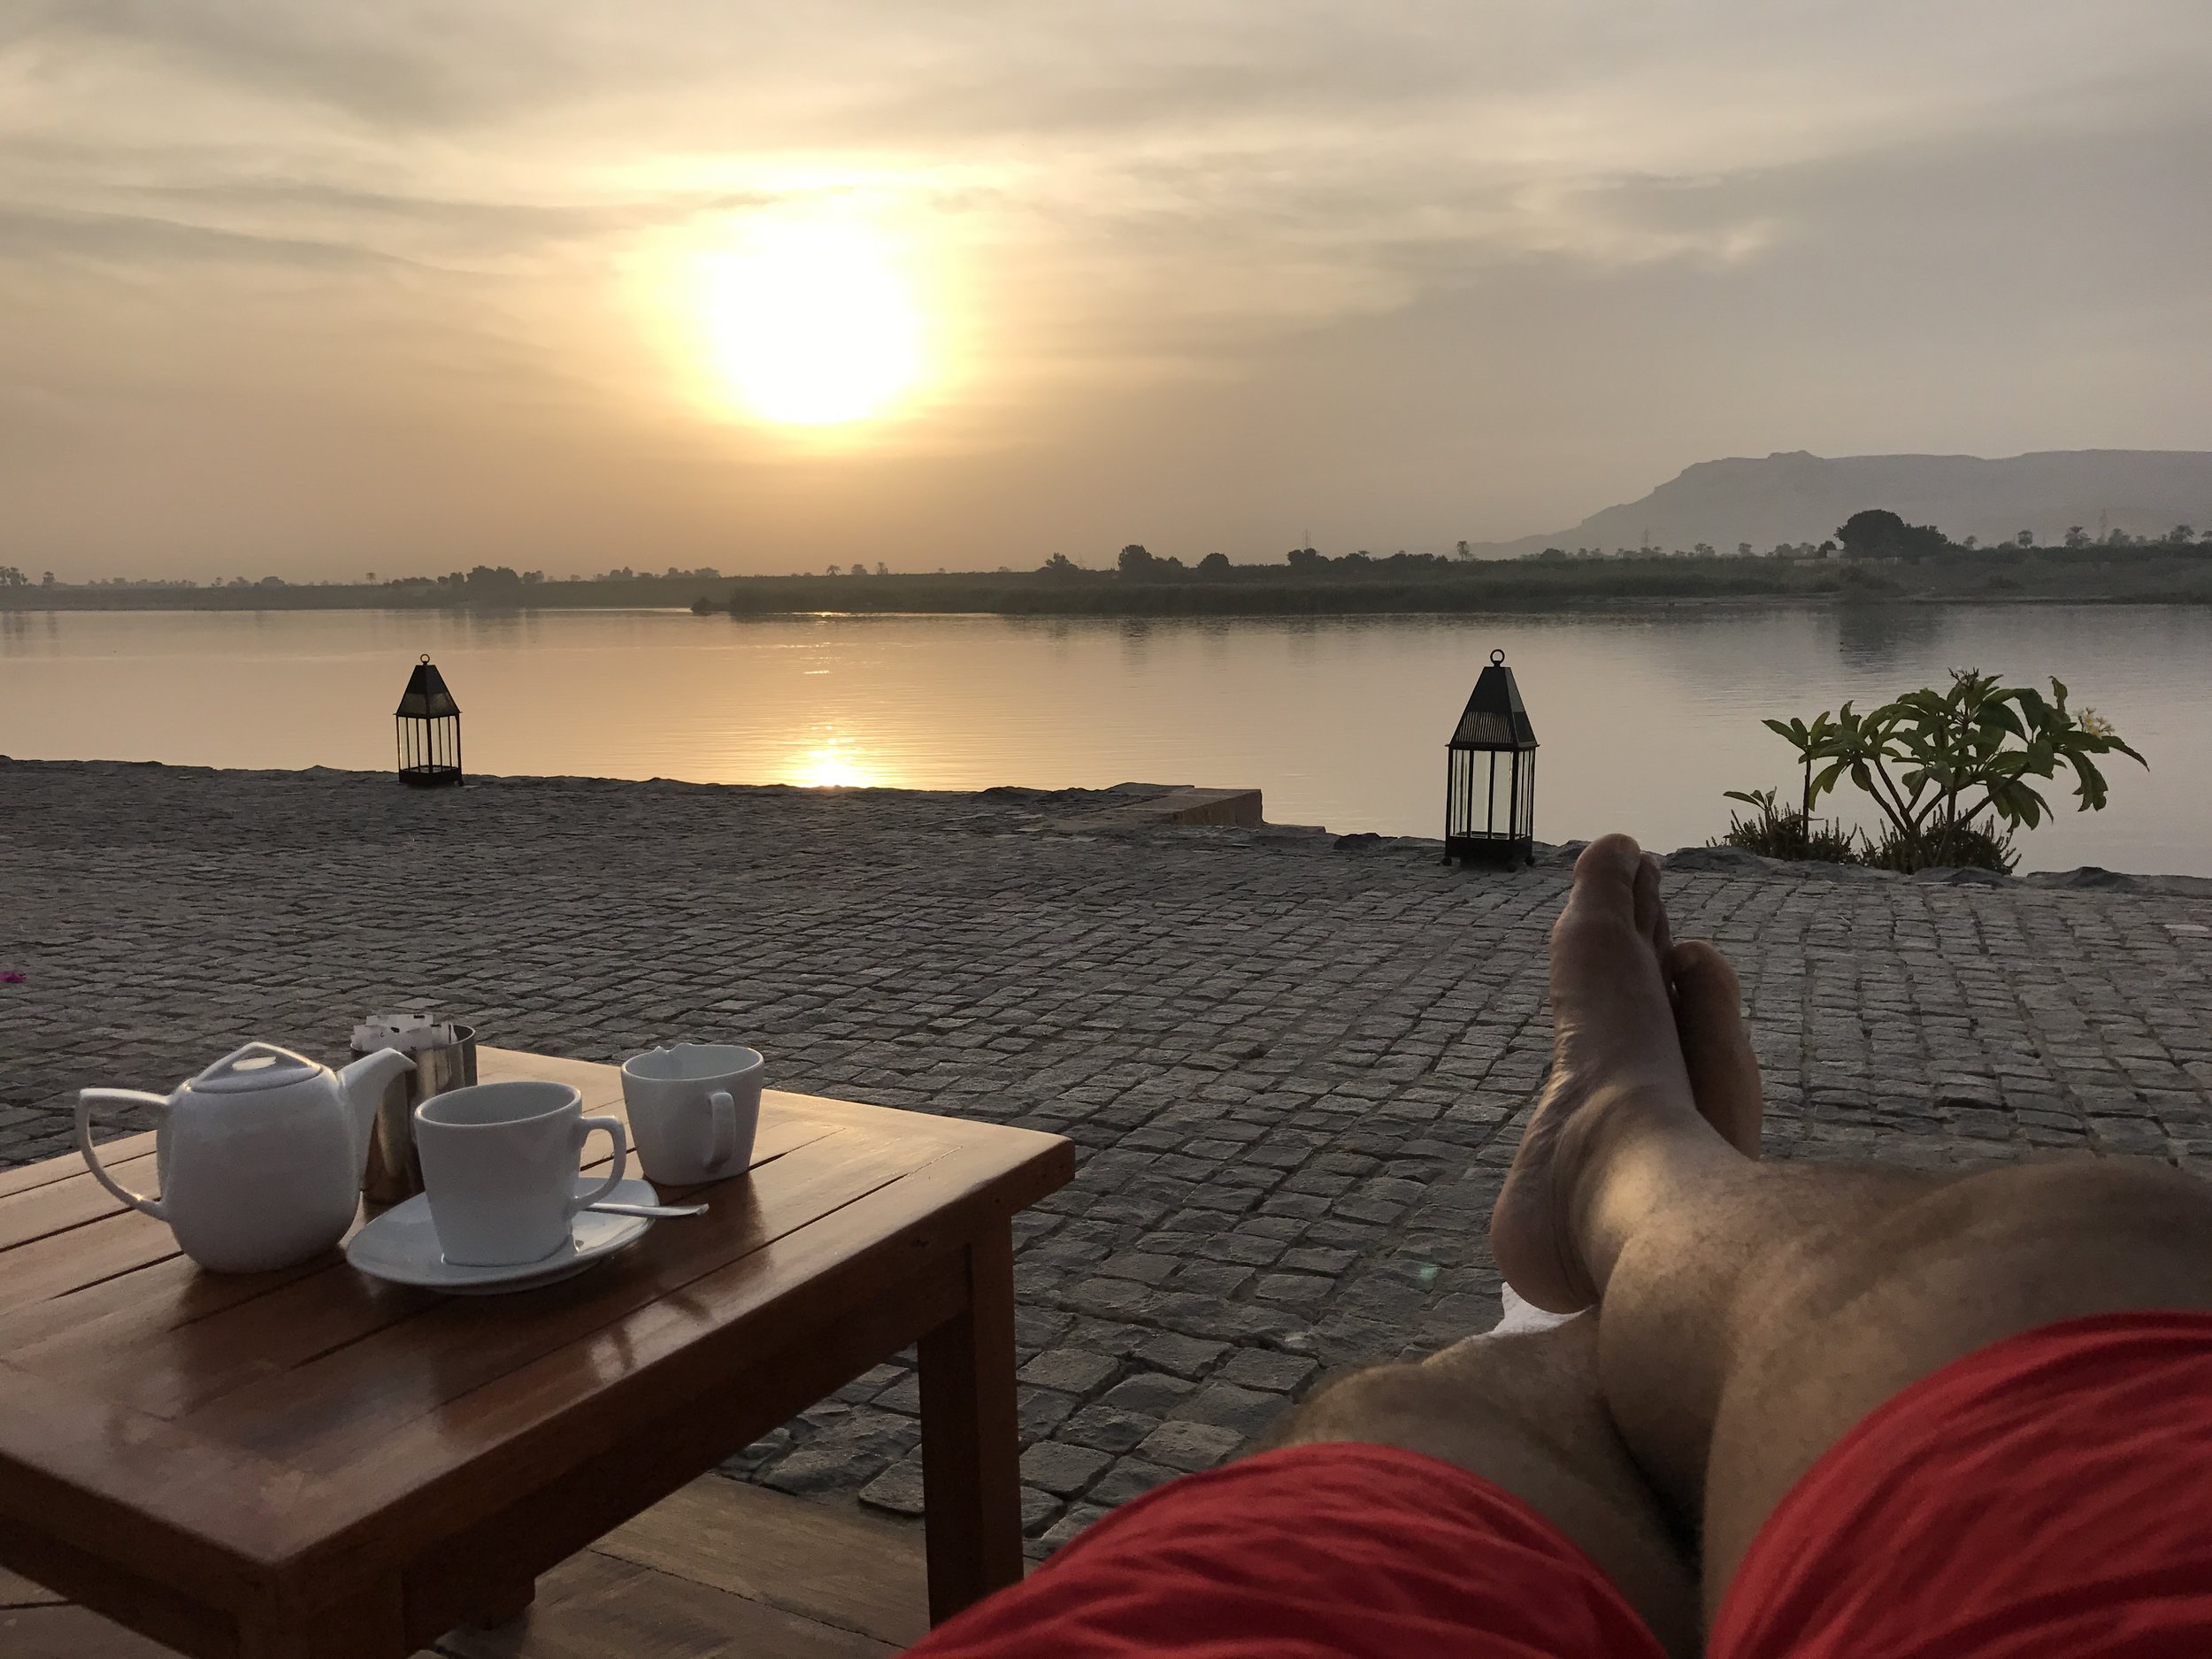 I spent the majority of my time in Luxor relaxing at the hotel, poolside, watching the sun set over the Nile River